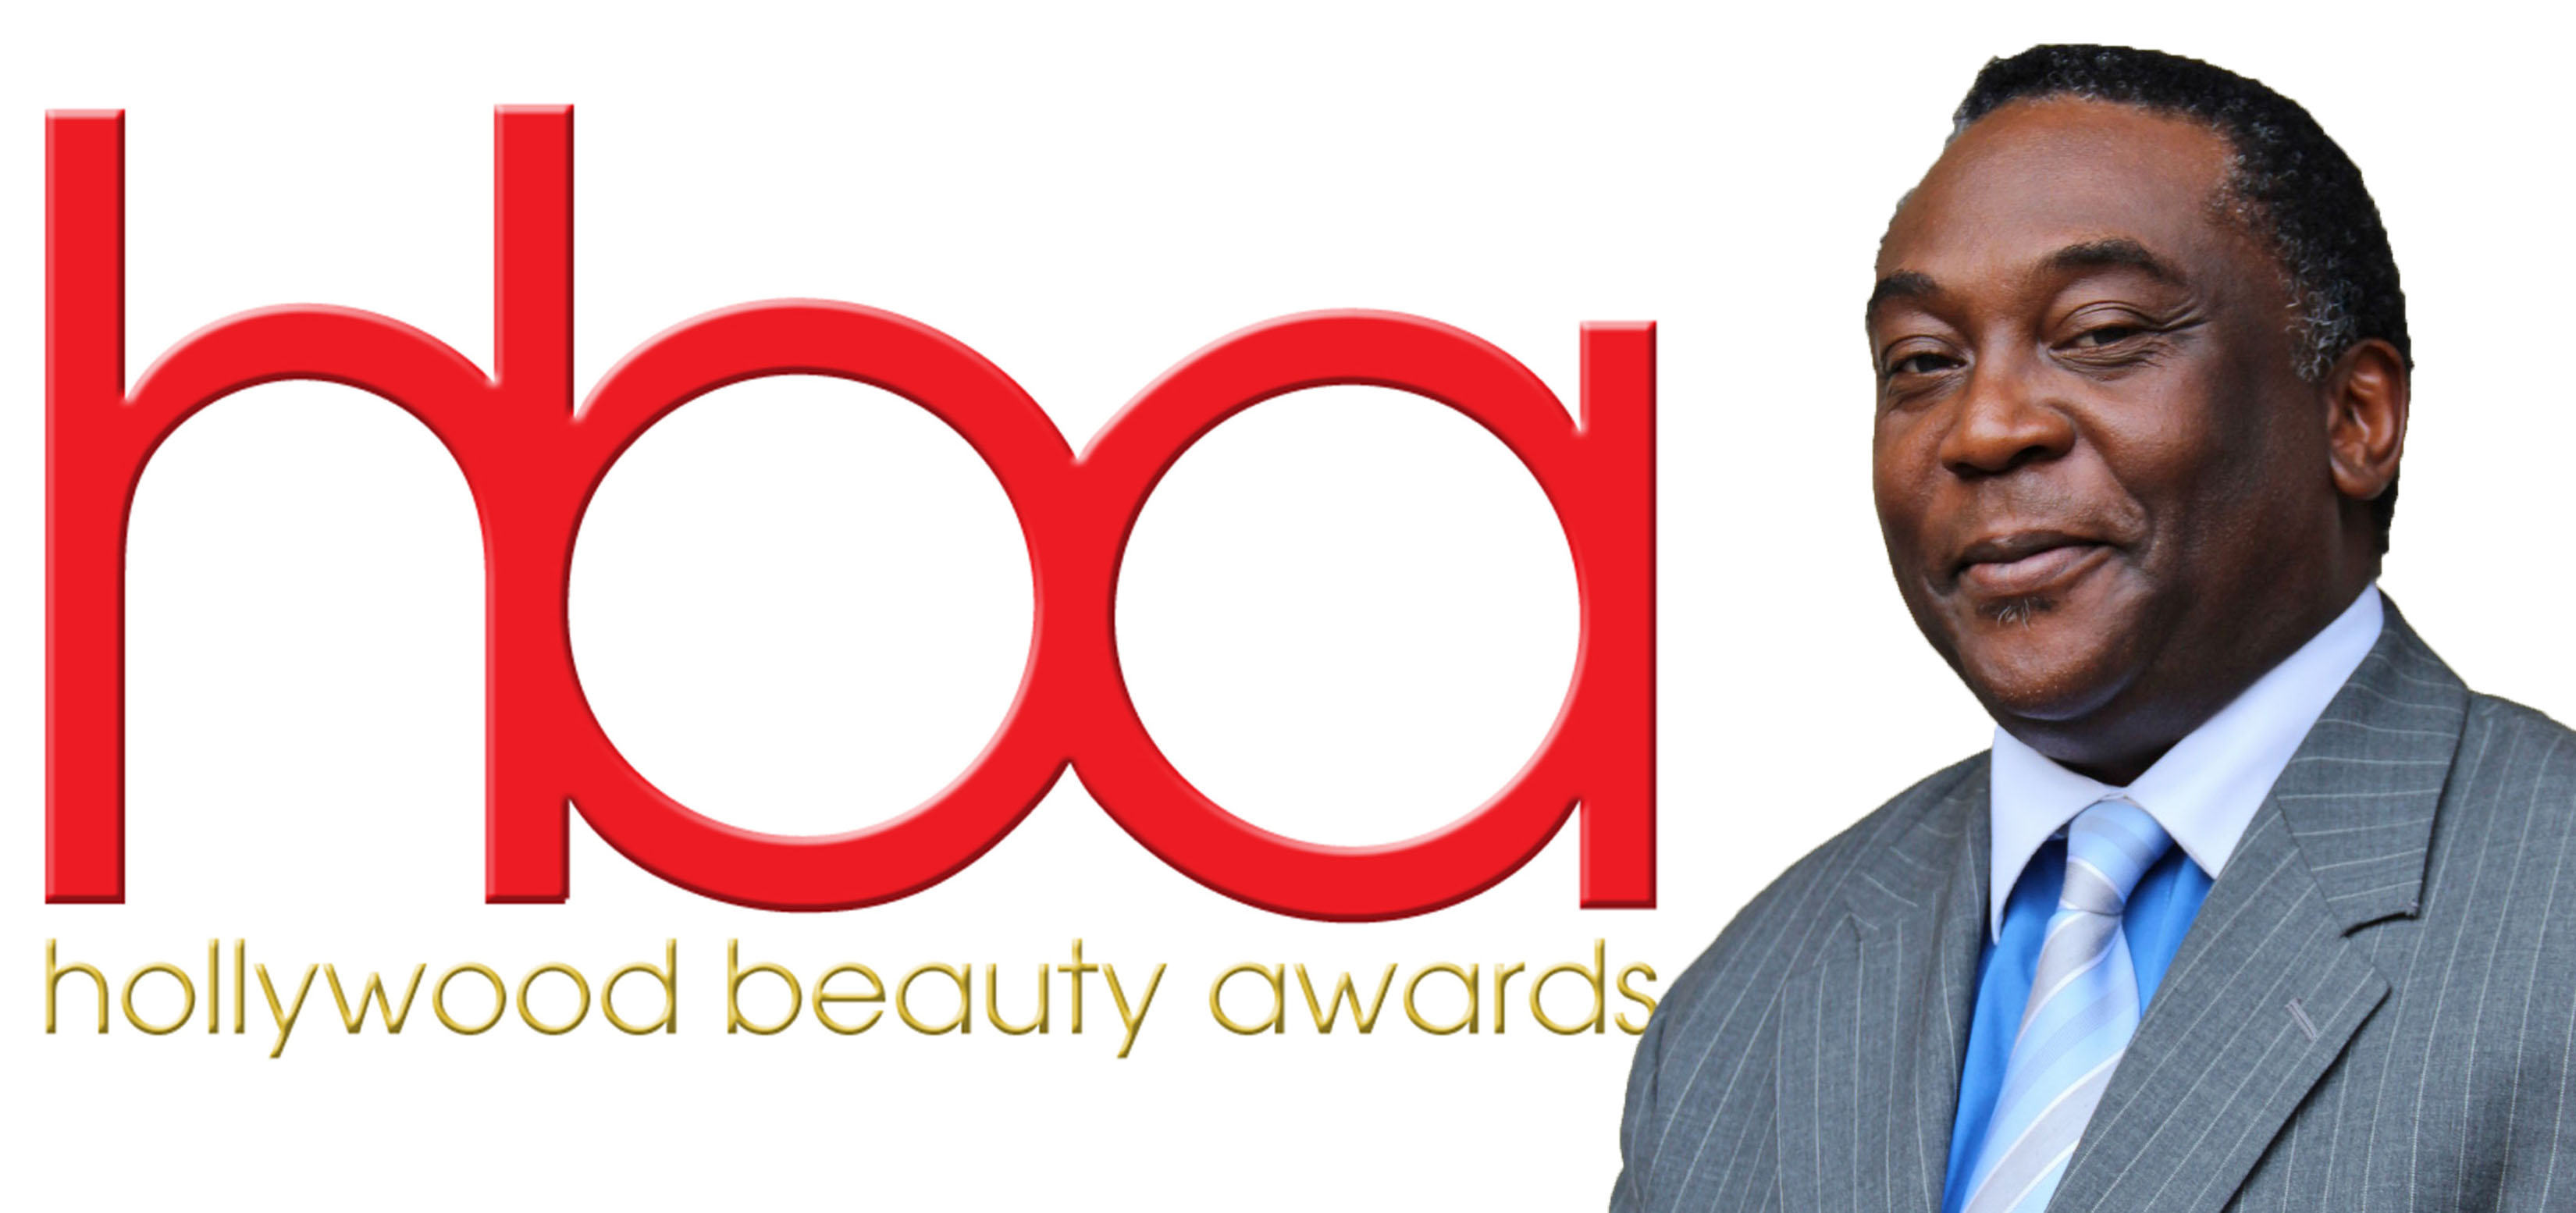 Sterfon Demings - 2016 Hollywood Beauty Awards Honoree